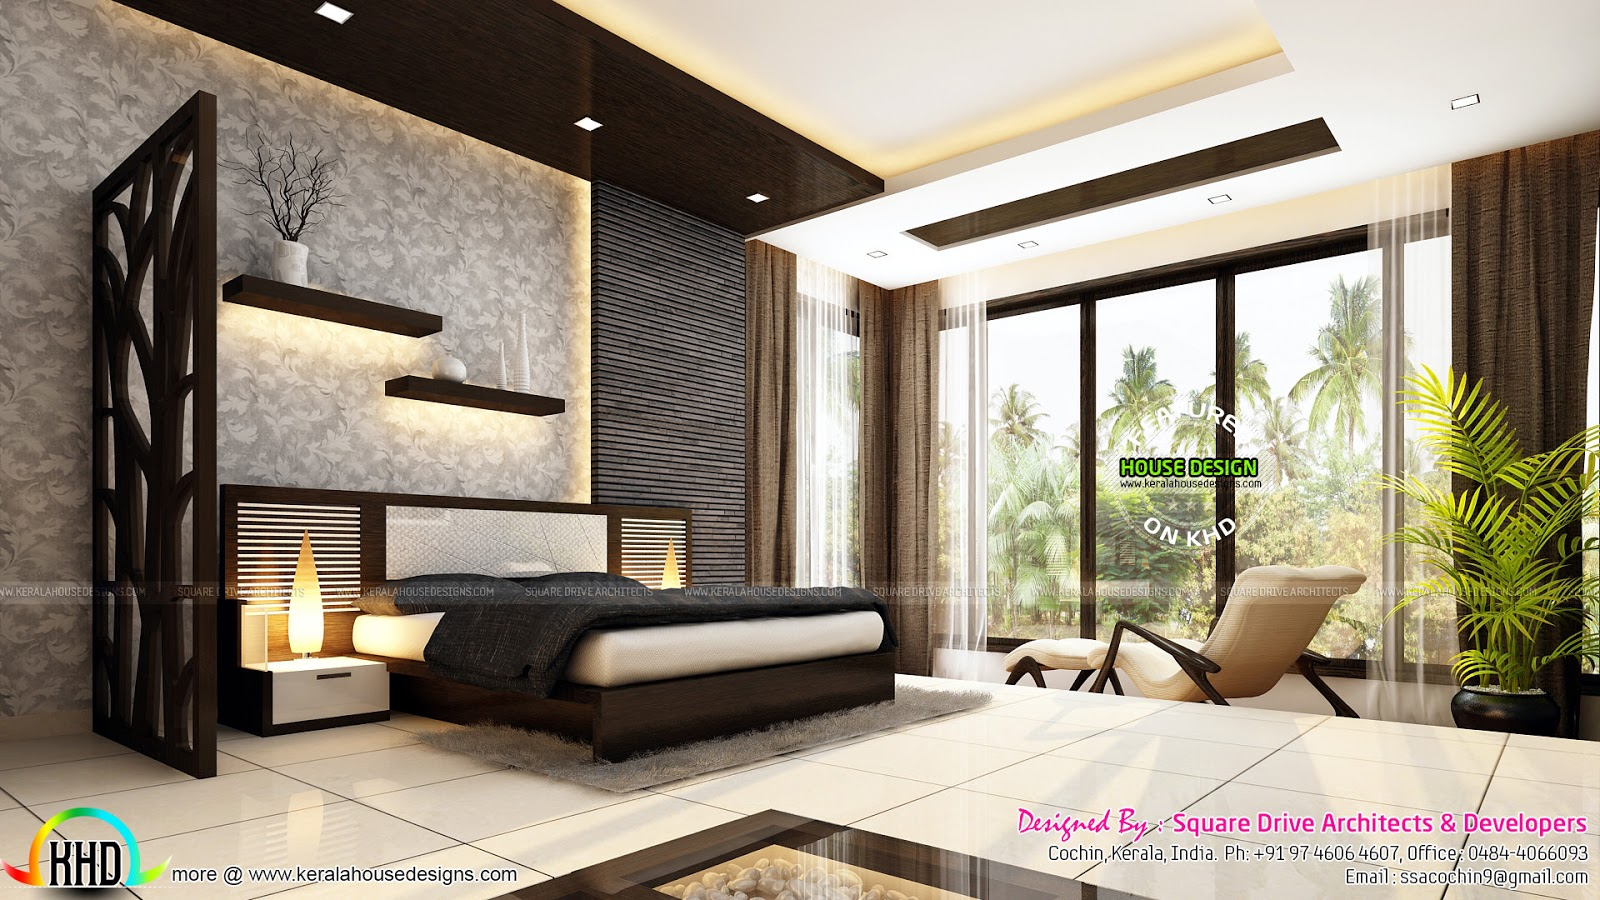 Very beautiful modern interior designs kerala home for Very small bedroom interior design